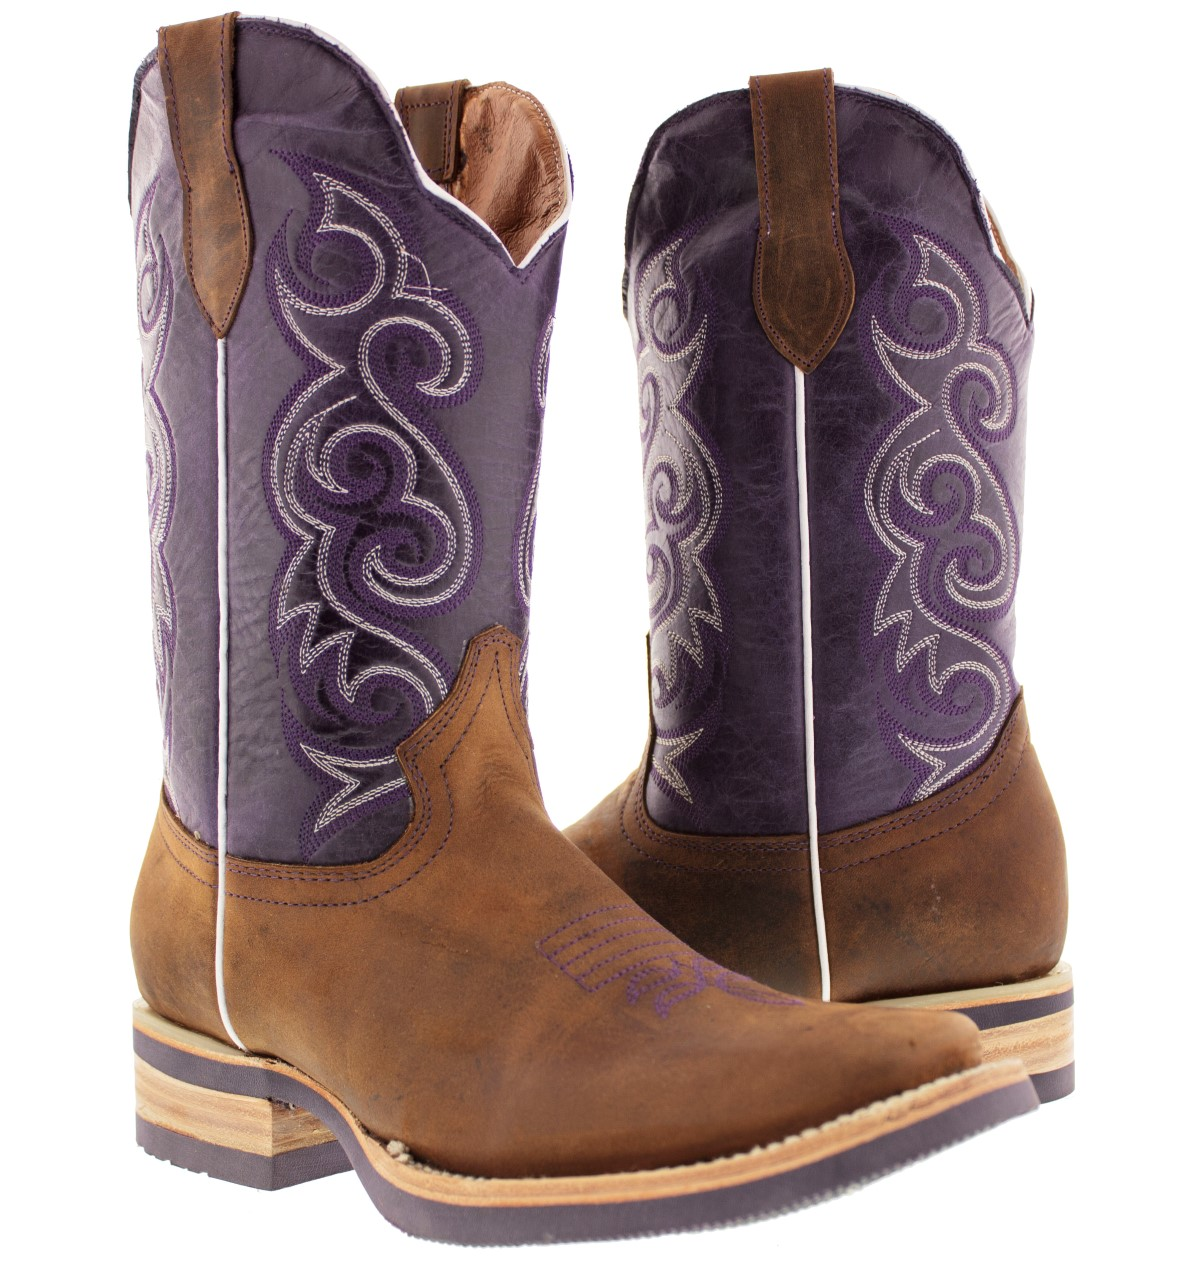 Innovative Ariat Womens Round Up Square Toe Cowboy Boots - Powder Brown